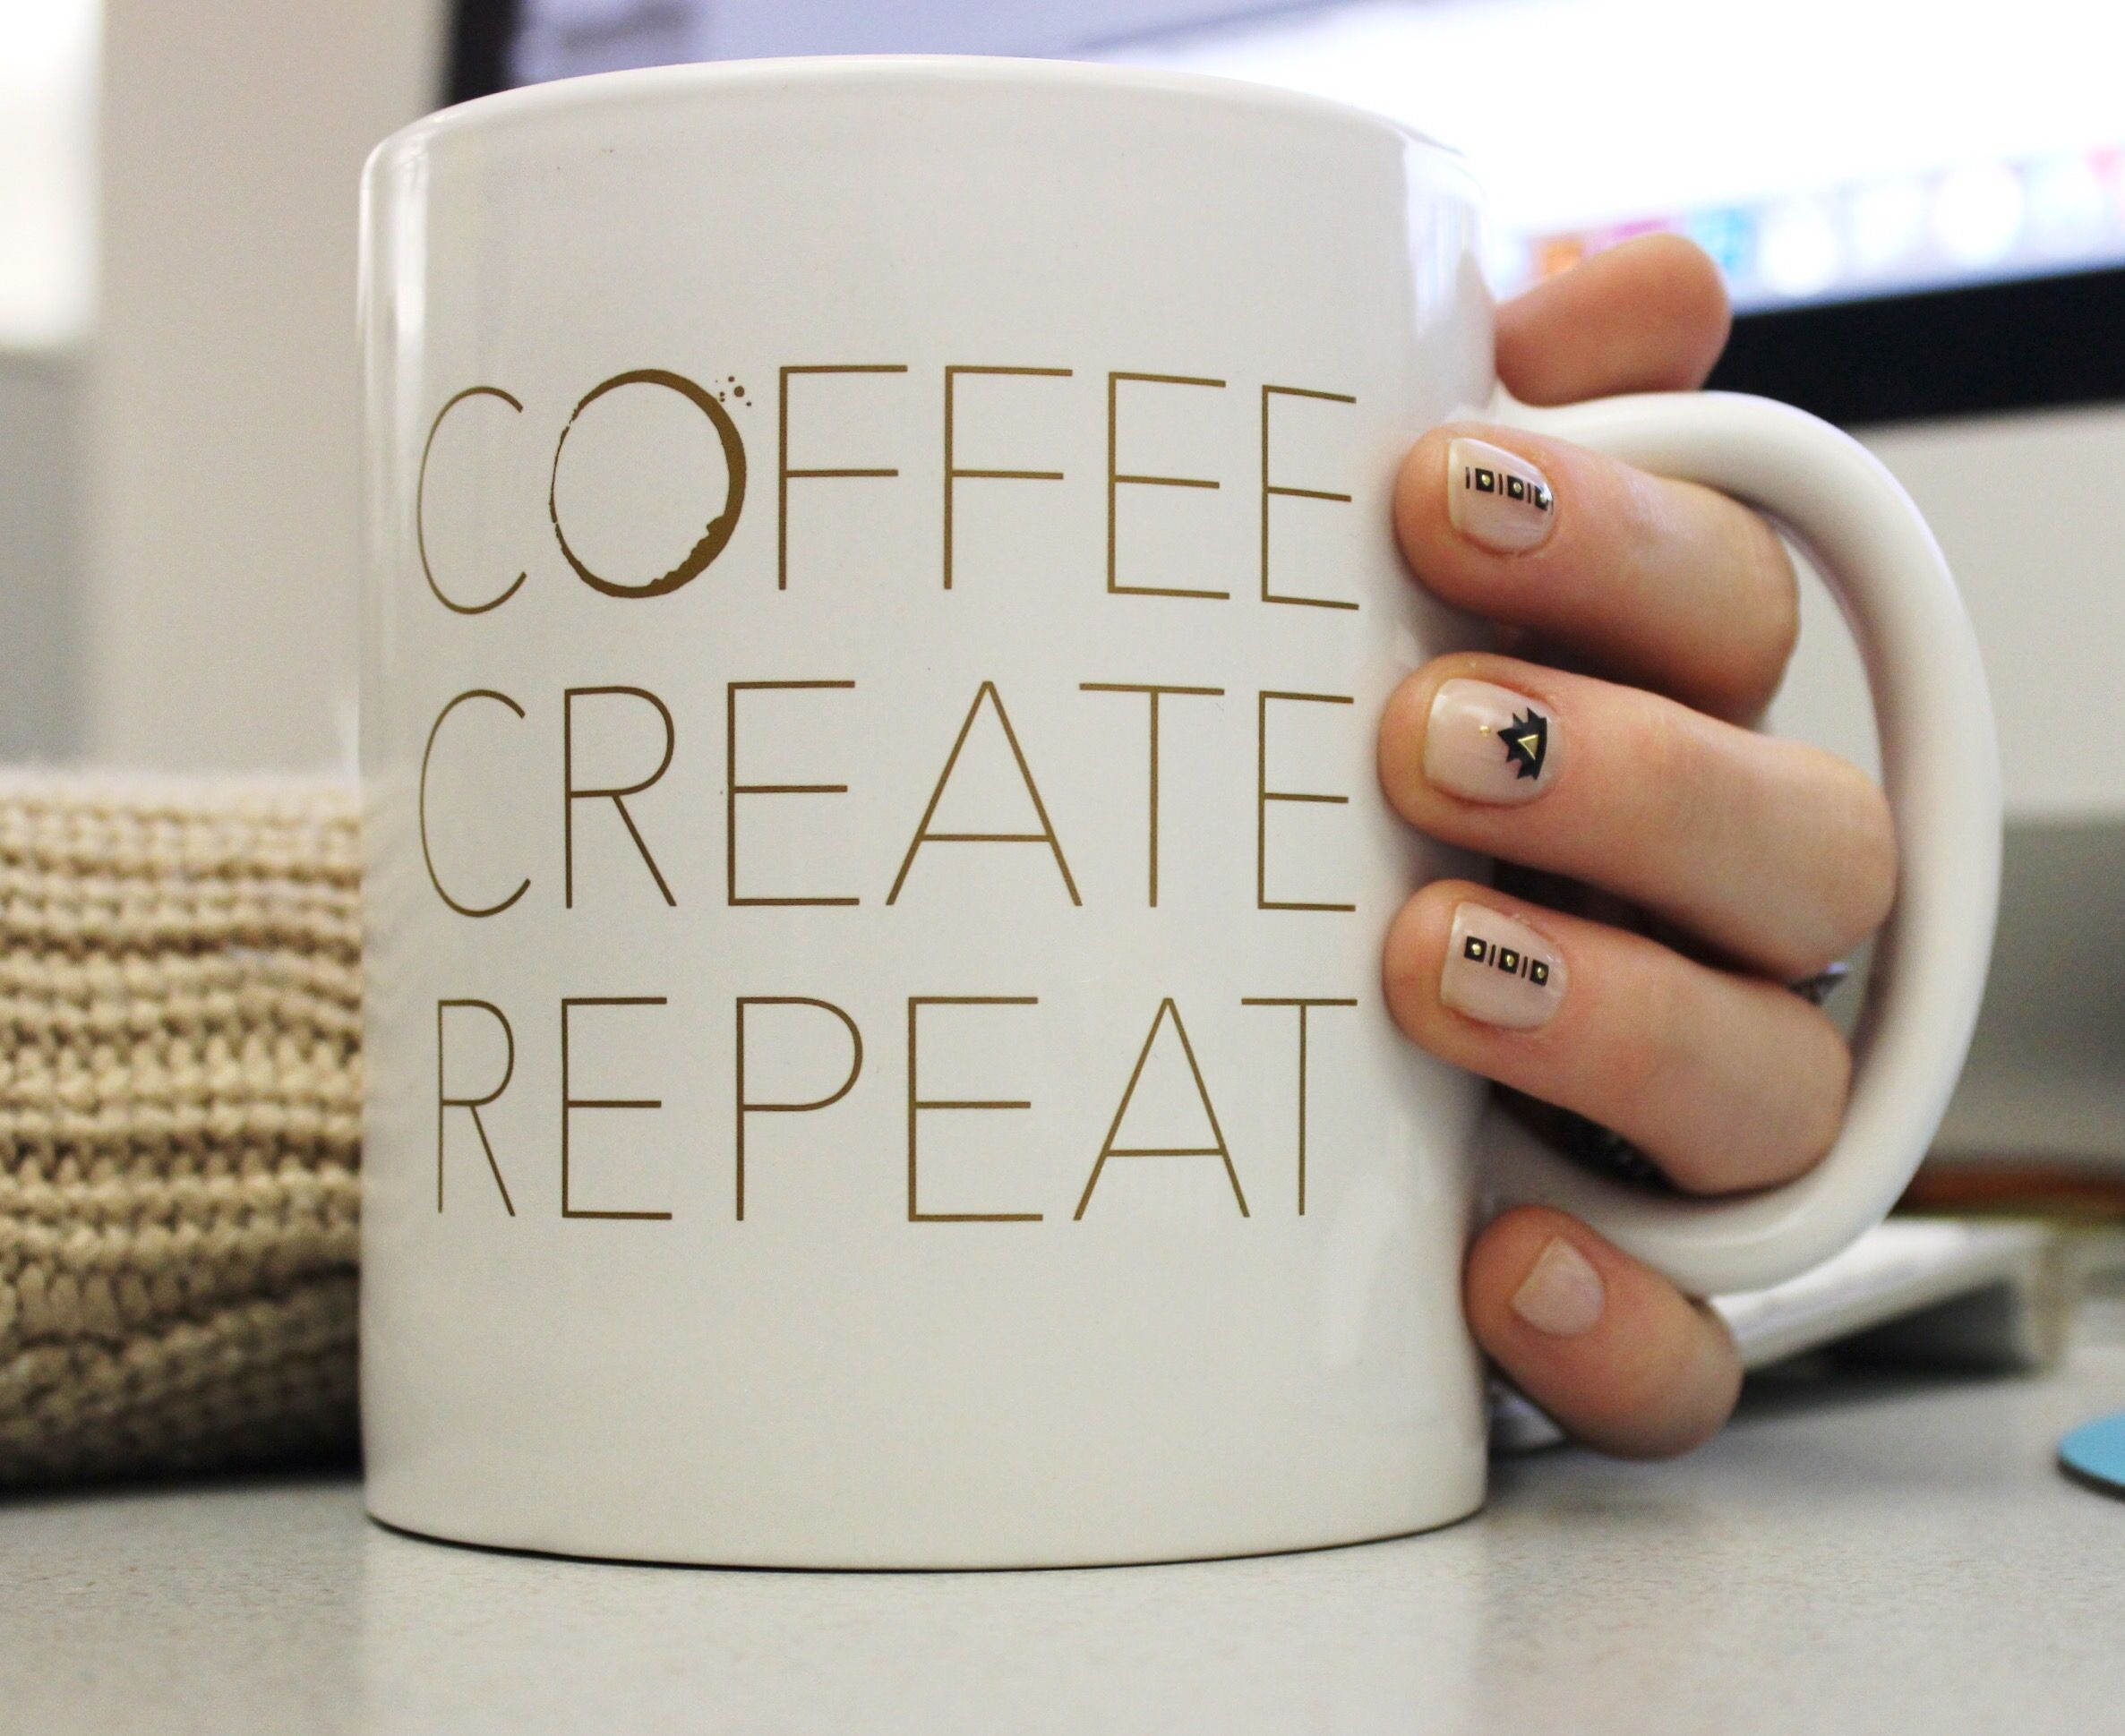 Coffee. Create. Repeat.